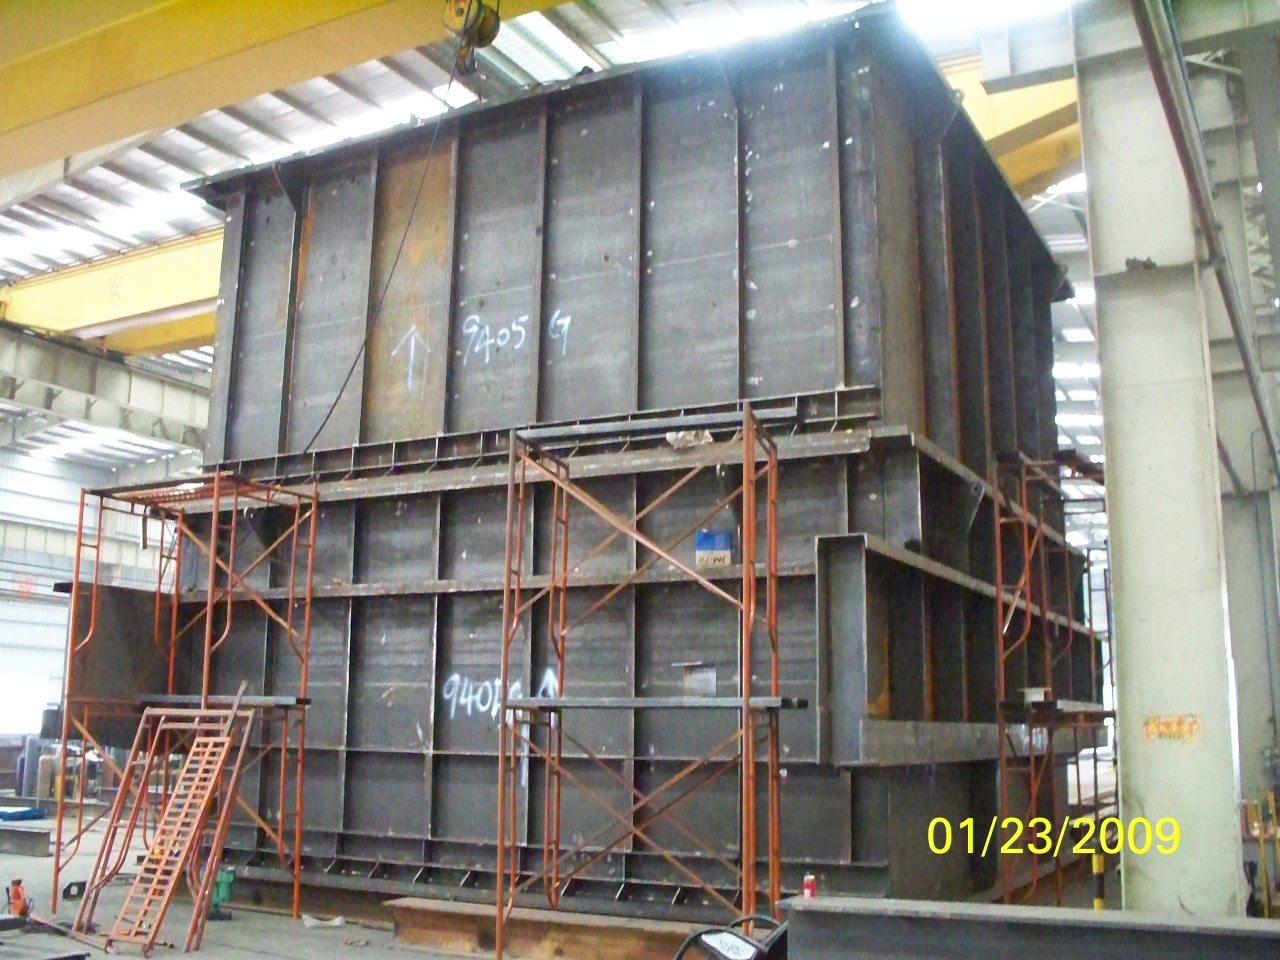 Steel Structures Exhaust System For French Alstom Power Plant Equipment pic five